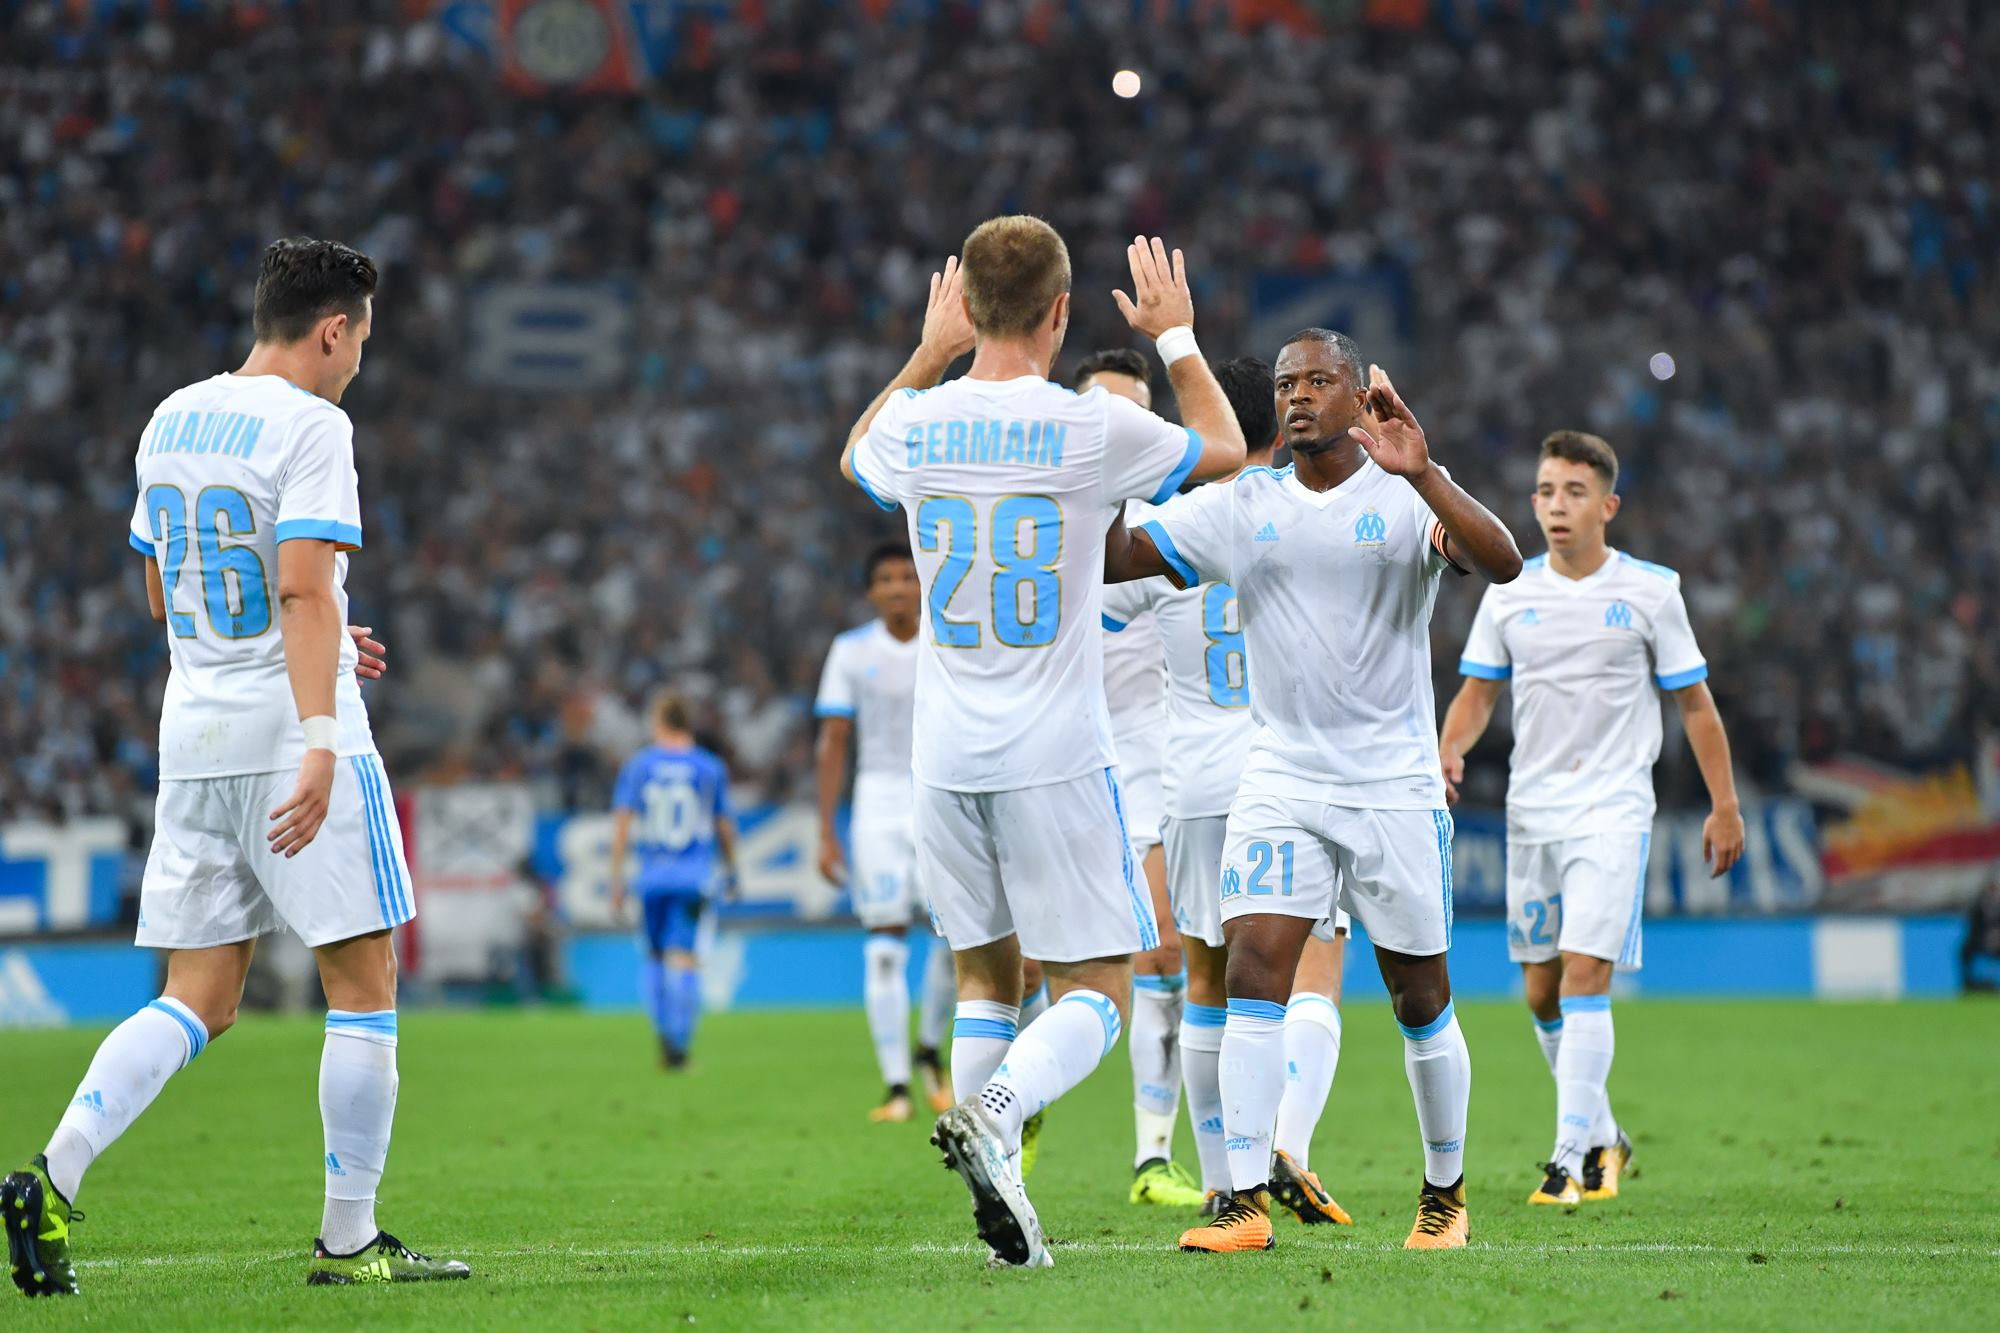 https://image.ibb.co/ekZJJa/Olympique_Marseille_home_kit_10.jpg